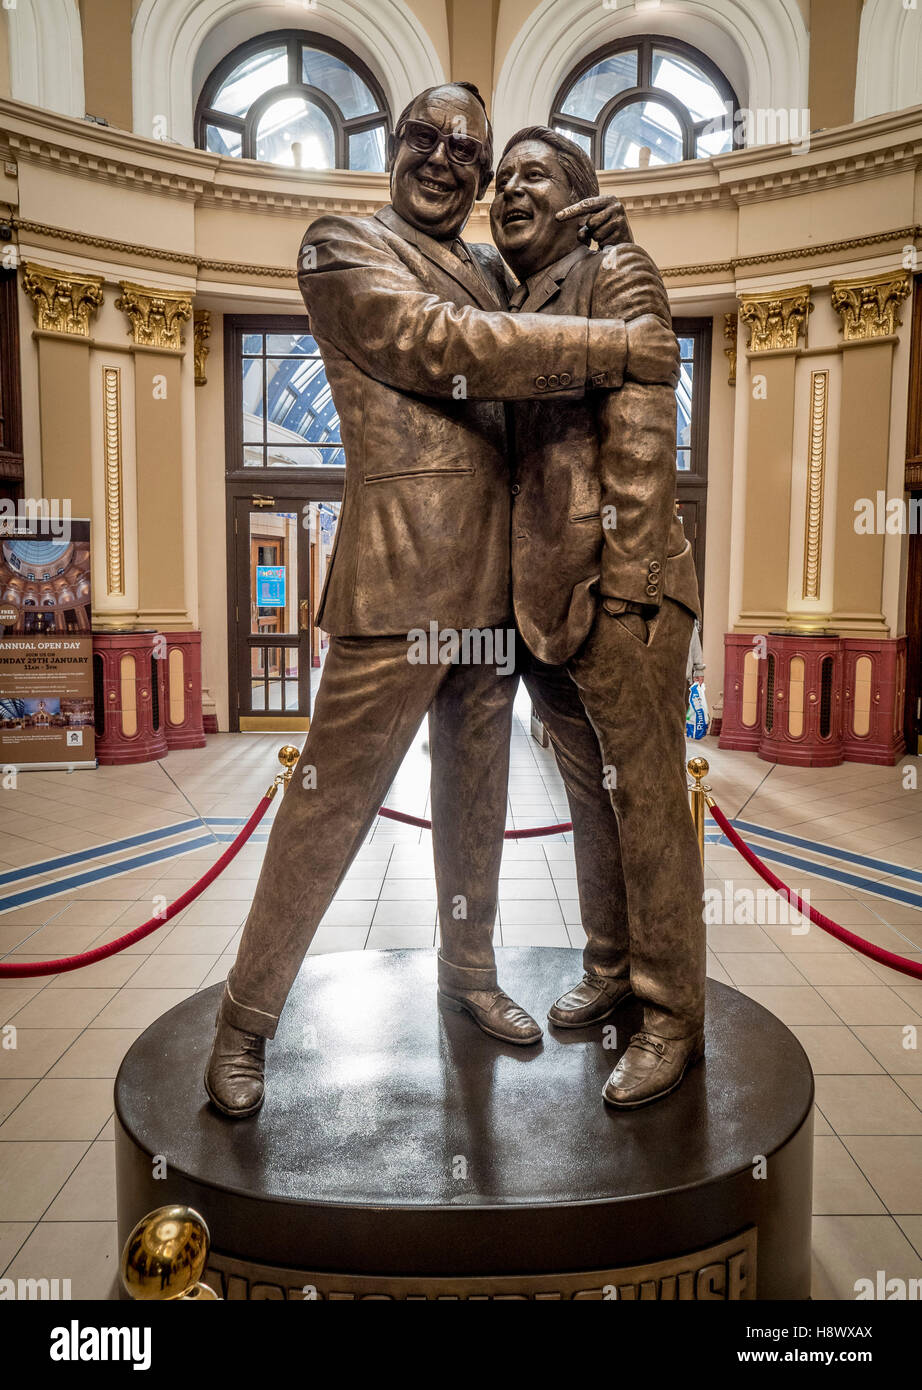 Statue of Eric Morecambe and Ernie Wise by Graham Ibbeson in the domed entrance of Blackpool's Winter Gardens, Lancashire, Stock Photo